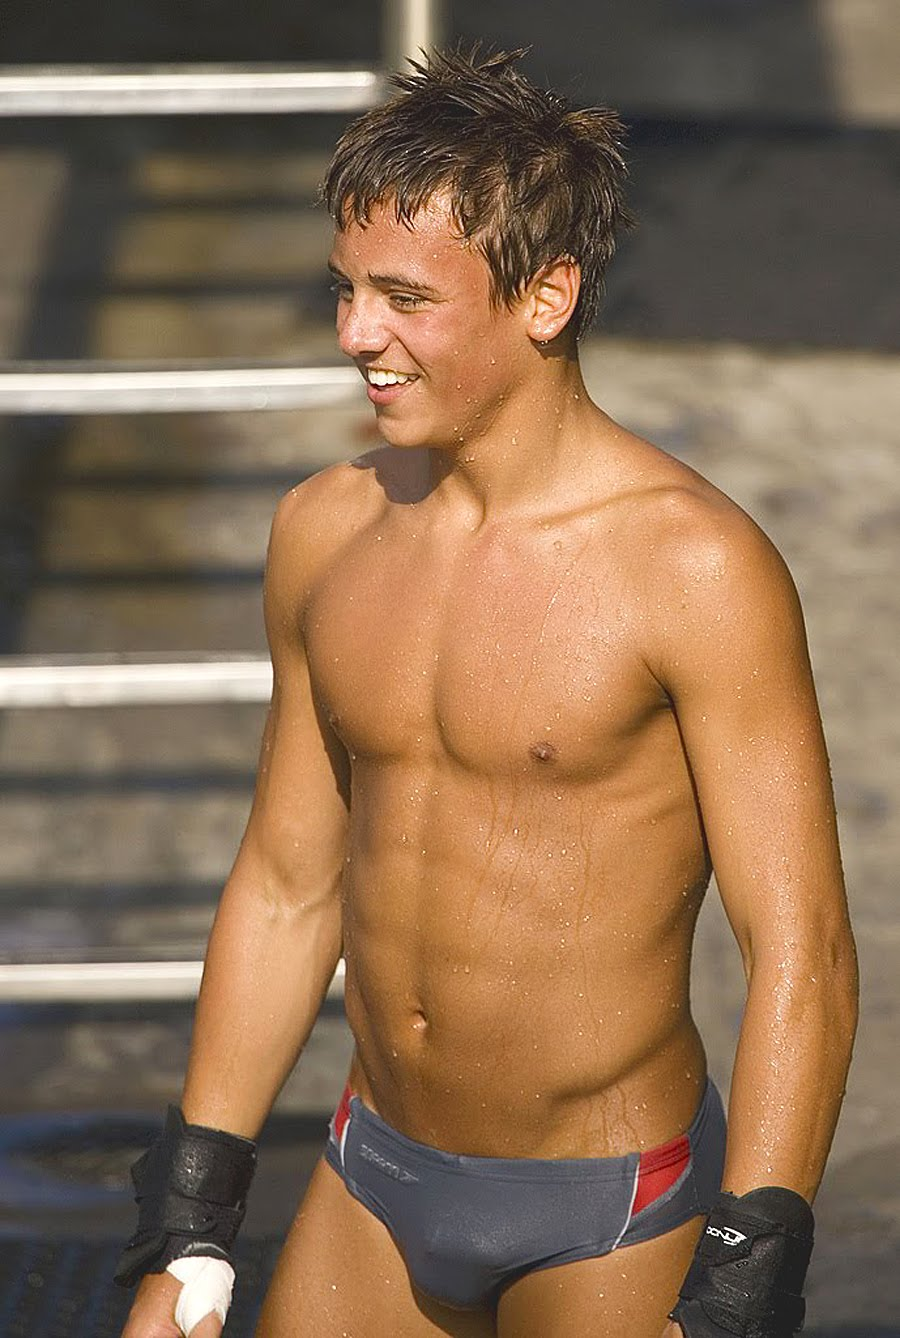 Tom Daley jongere foto drie via blogspot.com